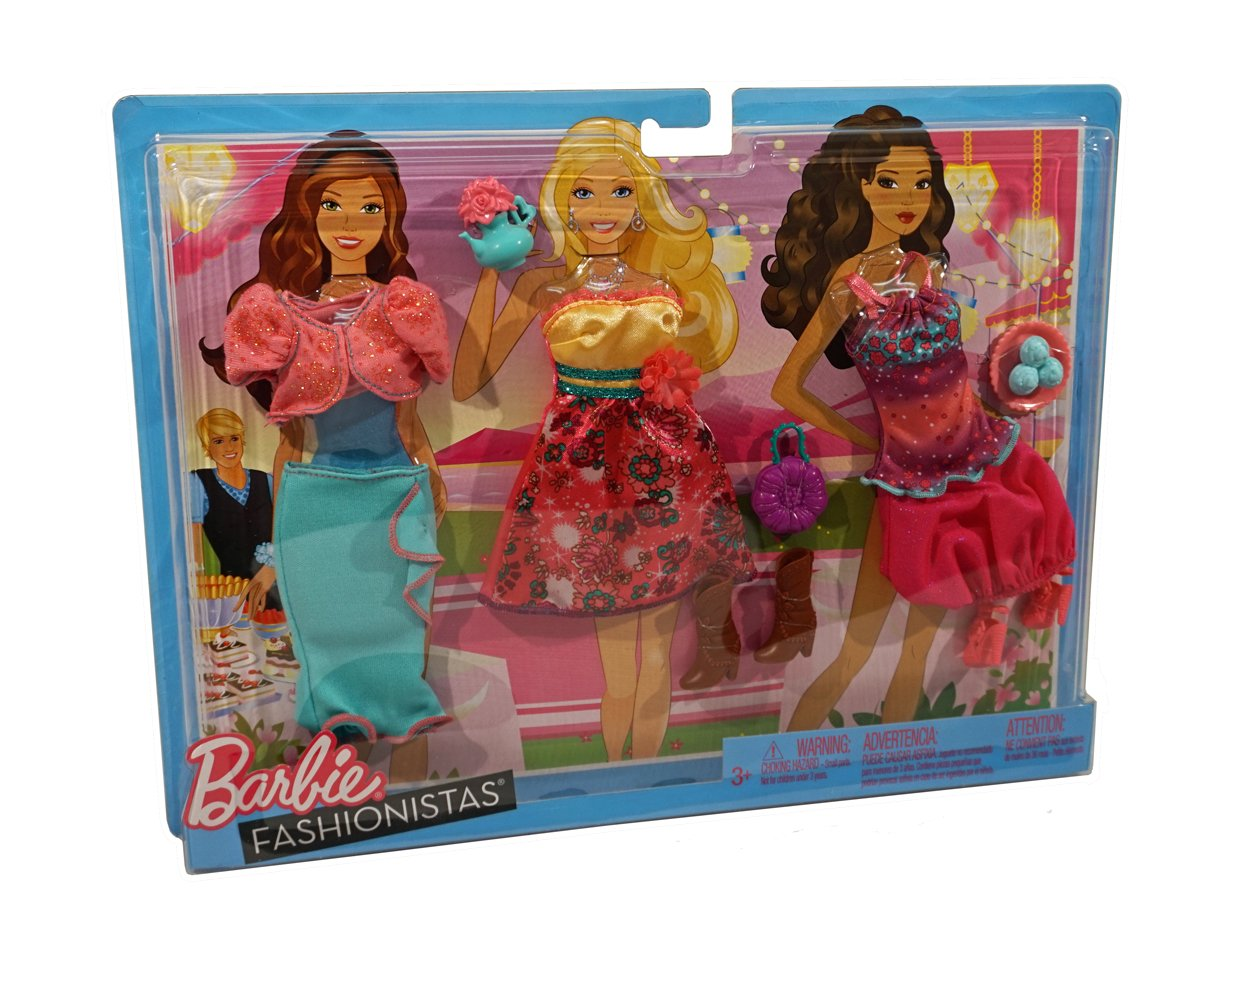 Barbie Fashionistas Day Looks Clothes - Tea Party Outfits